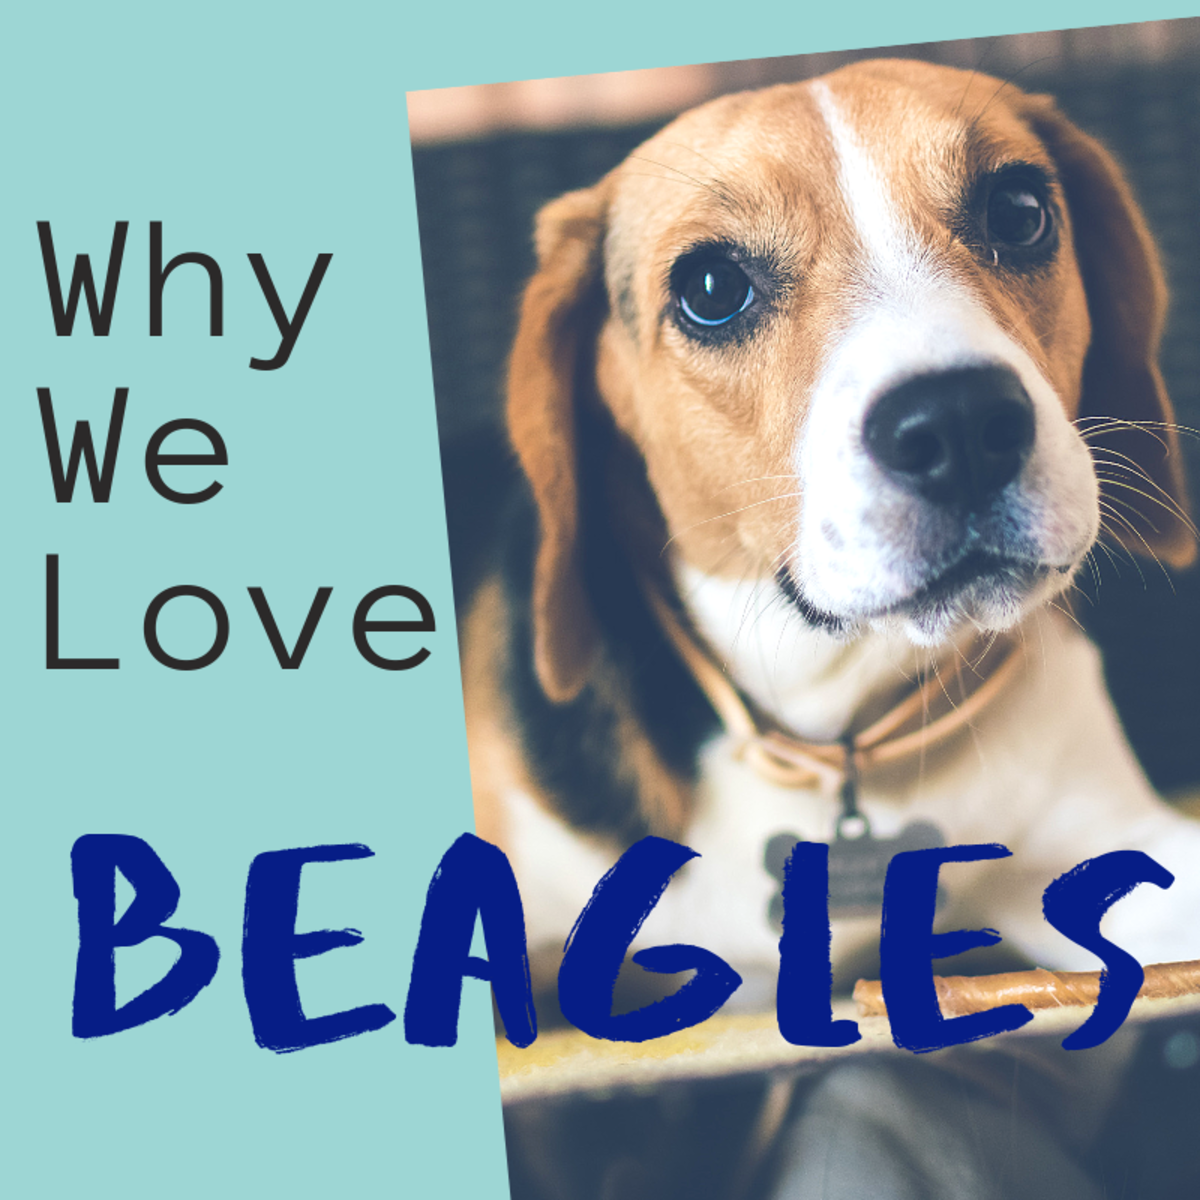 What is the most popular dog breed?